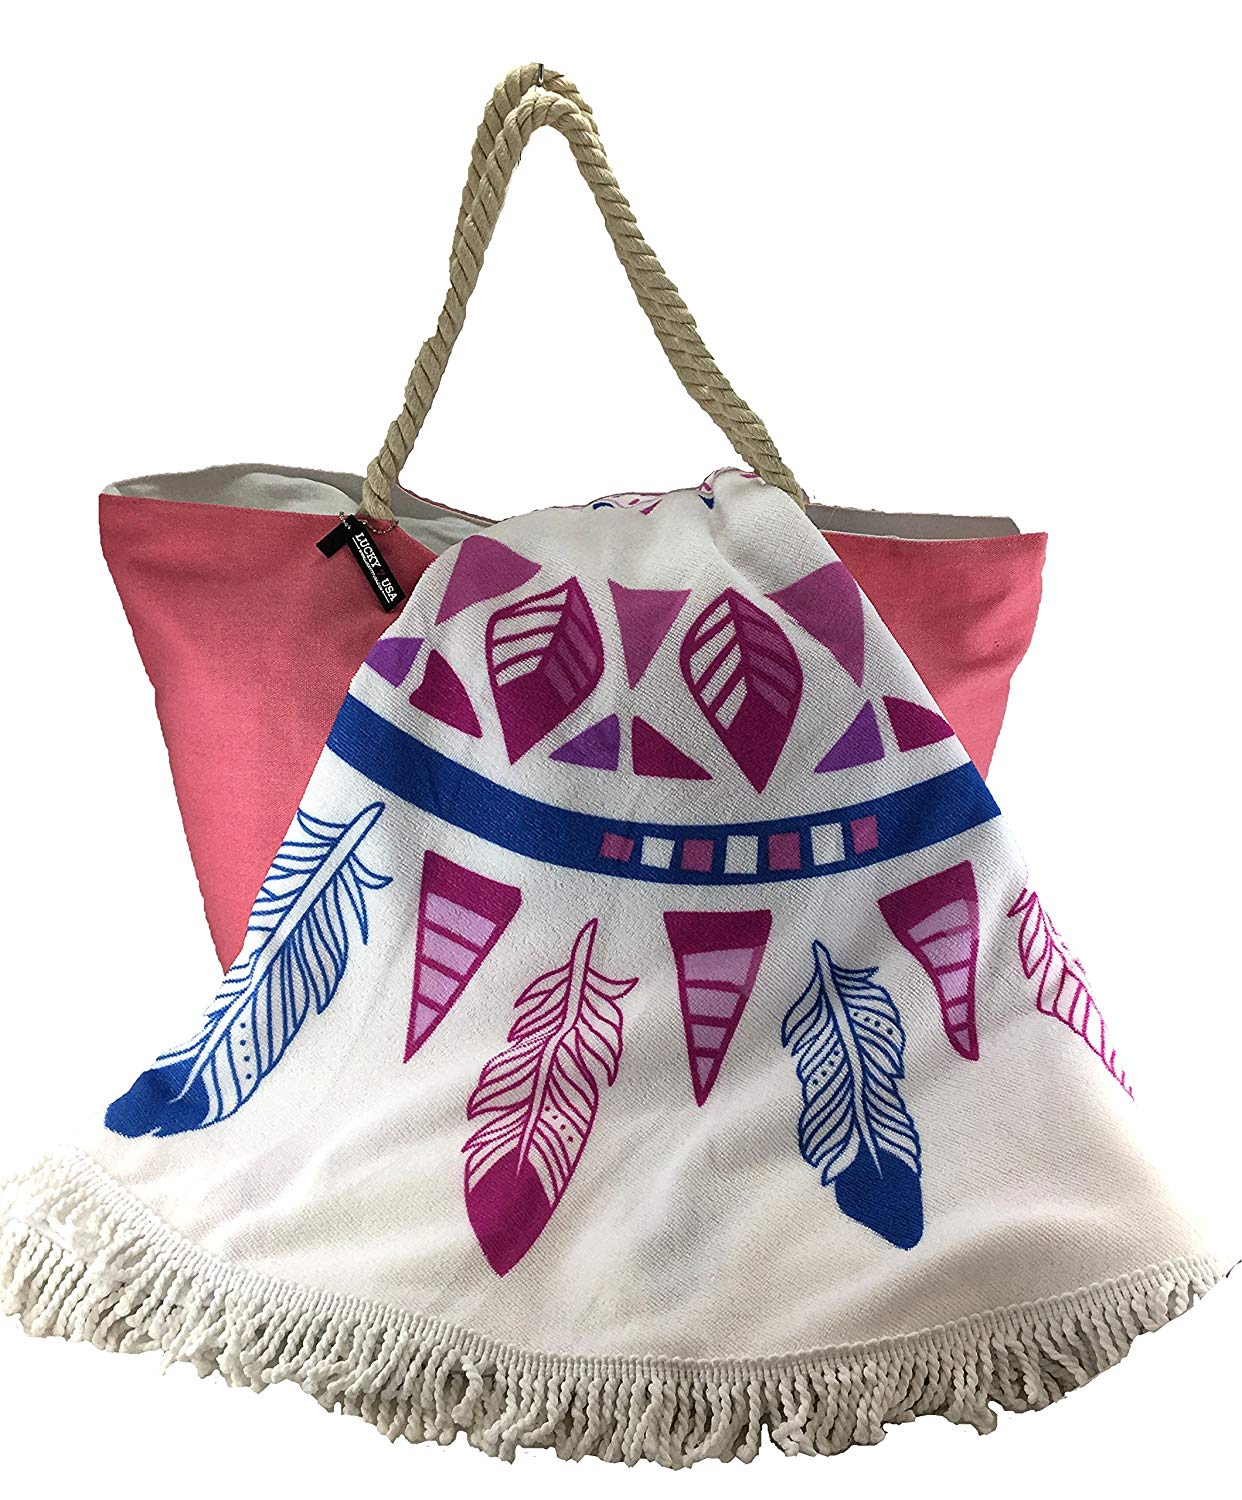 49ec0c51e008be Get Quotations · Large Round Beach Towel Feather Dream-catcher and Pink  Canvas Beach Bag with Zipper Set